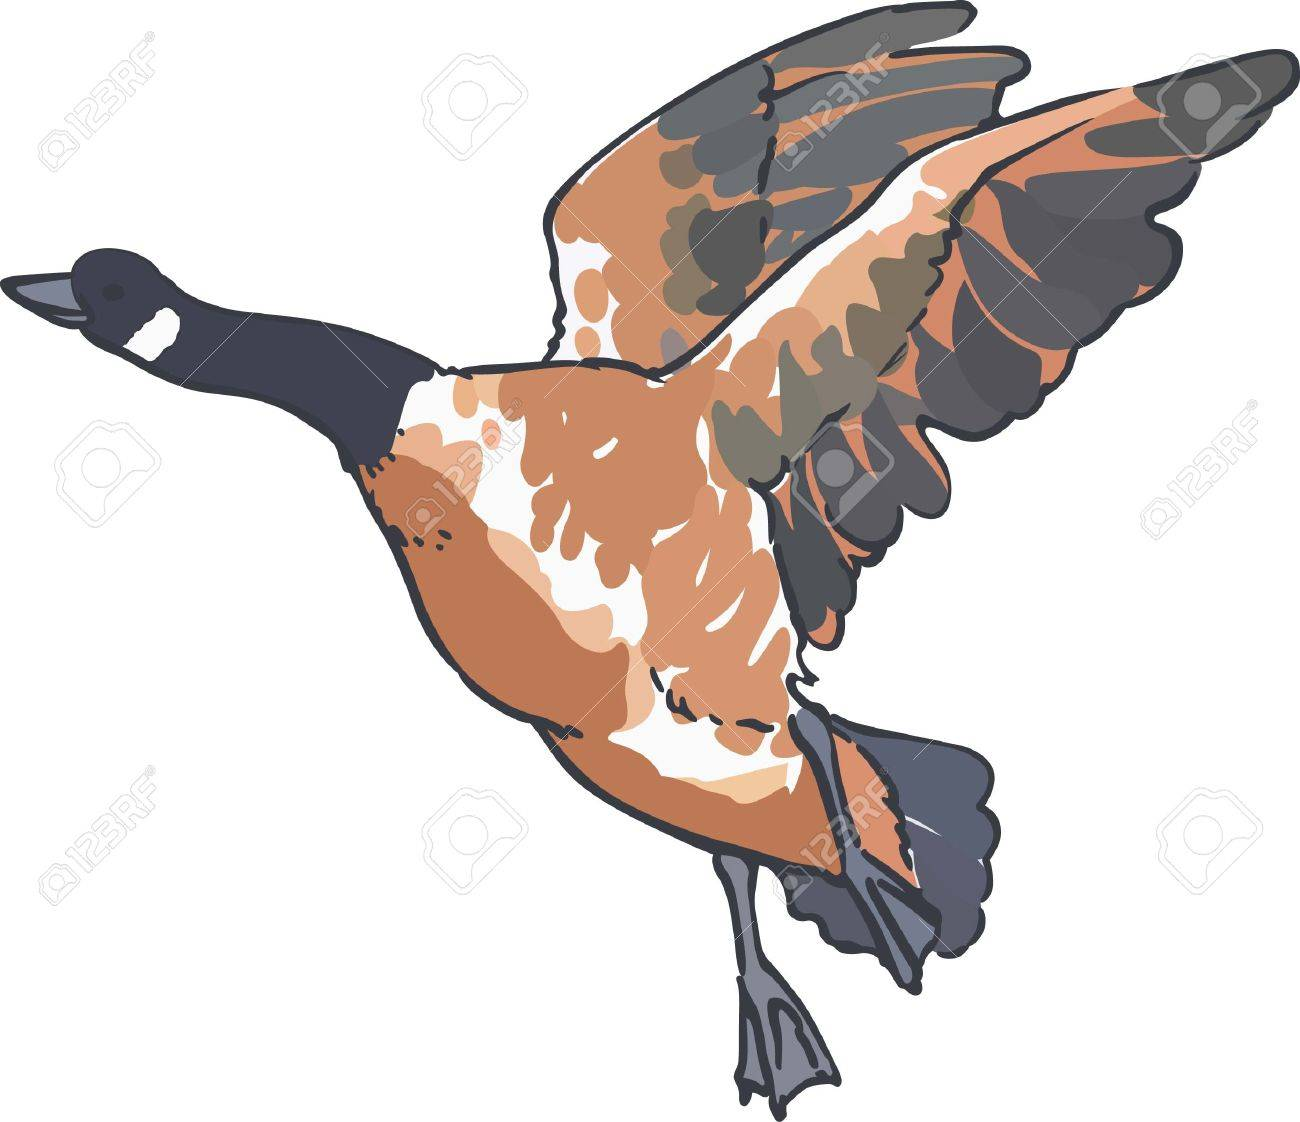 A goose is a classic symbol for canada royalty free cliparts a goose is a classic symbol for canada stock vector 45352179 biocorpaavc Gallery